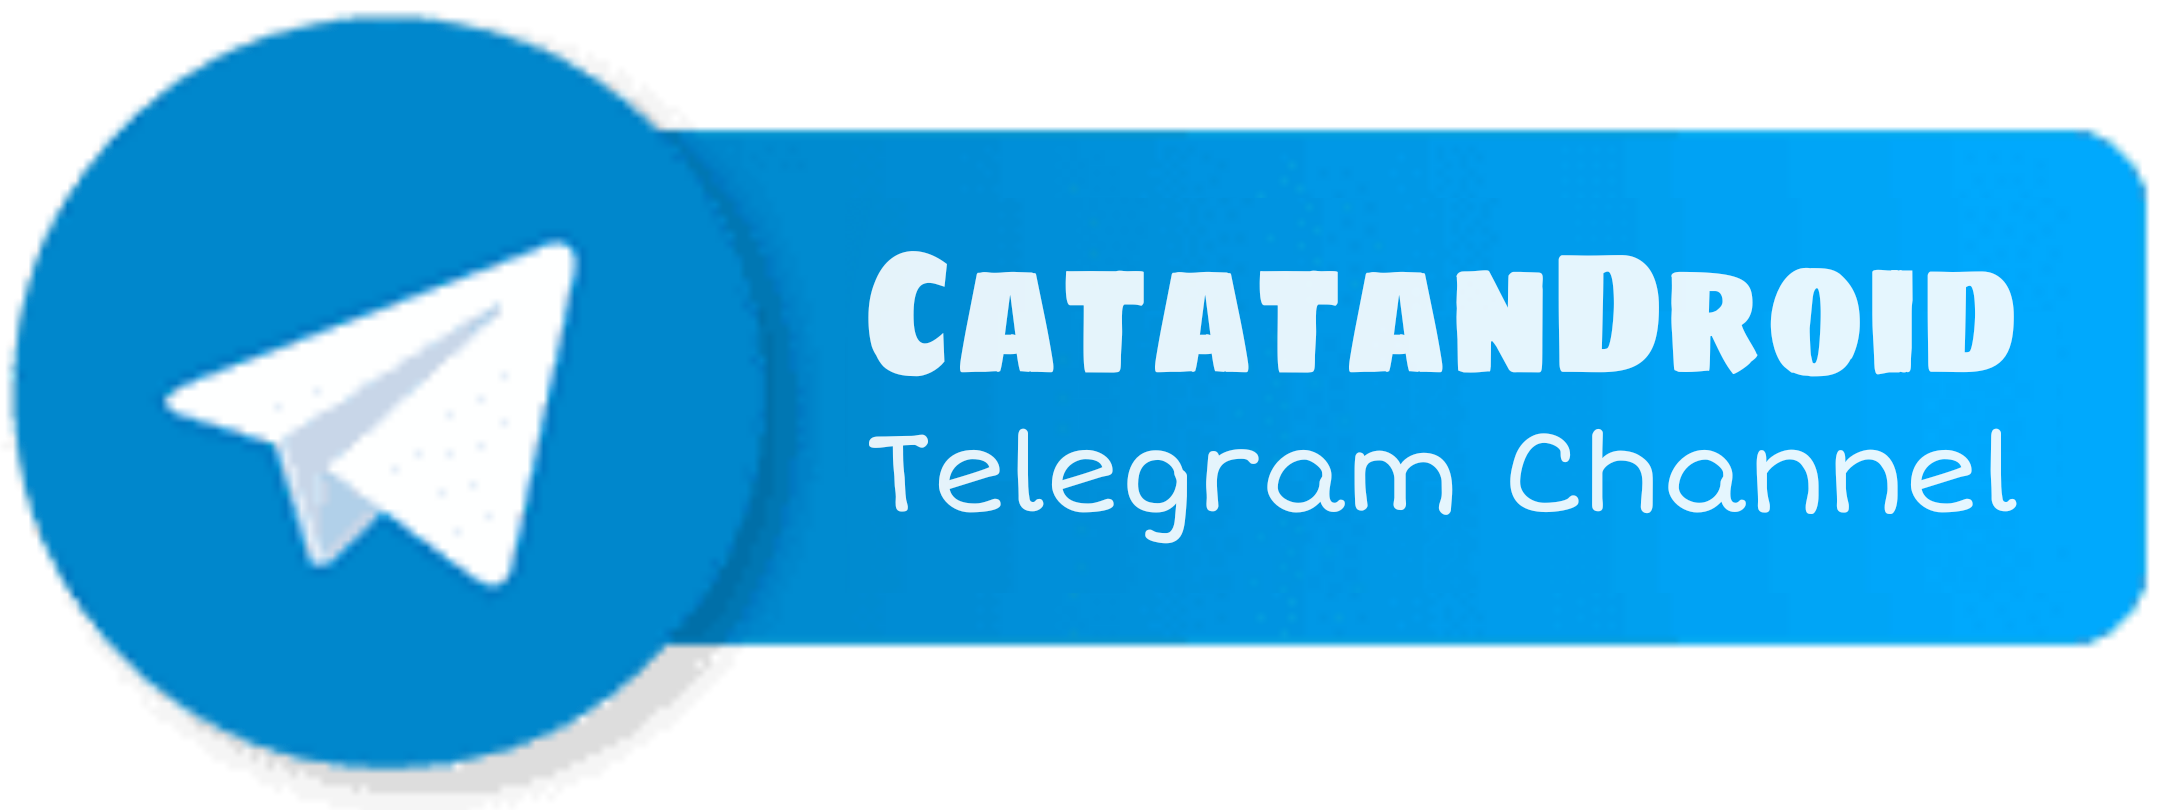 catatandroid telegram channel button